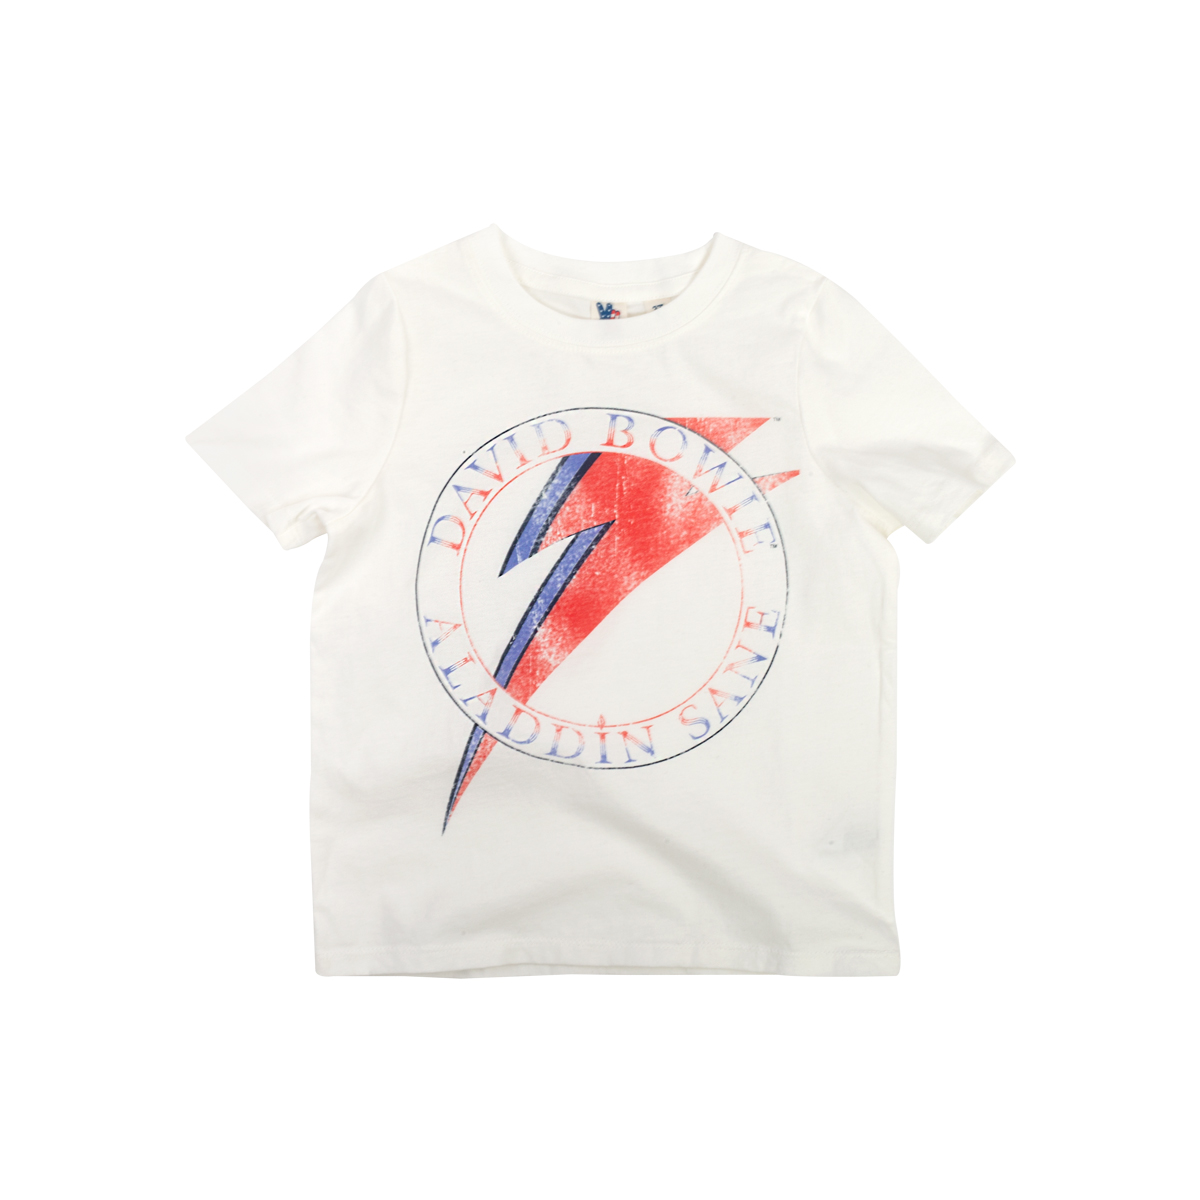 Aladdin Sane Toddler T-Shirt